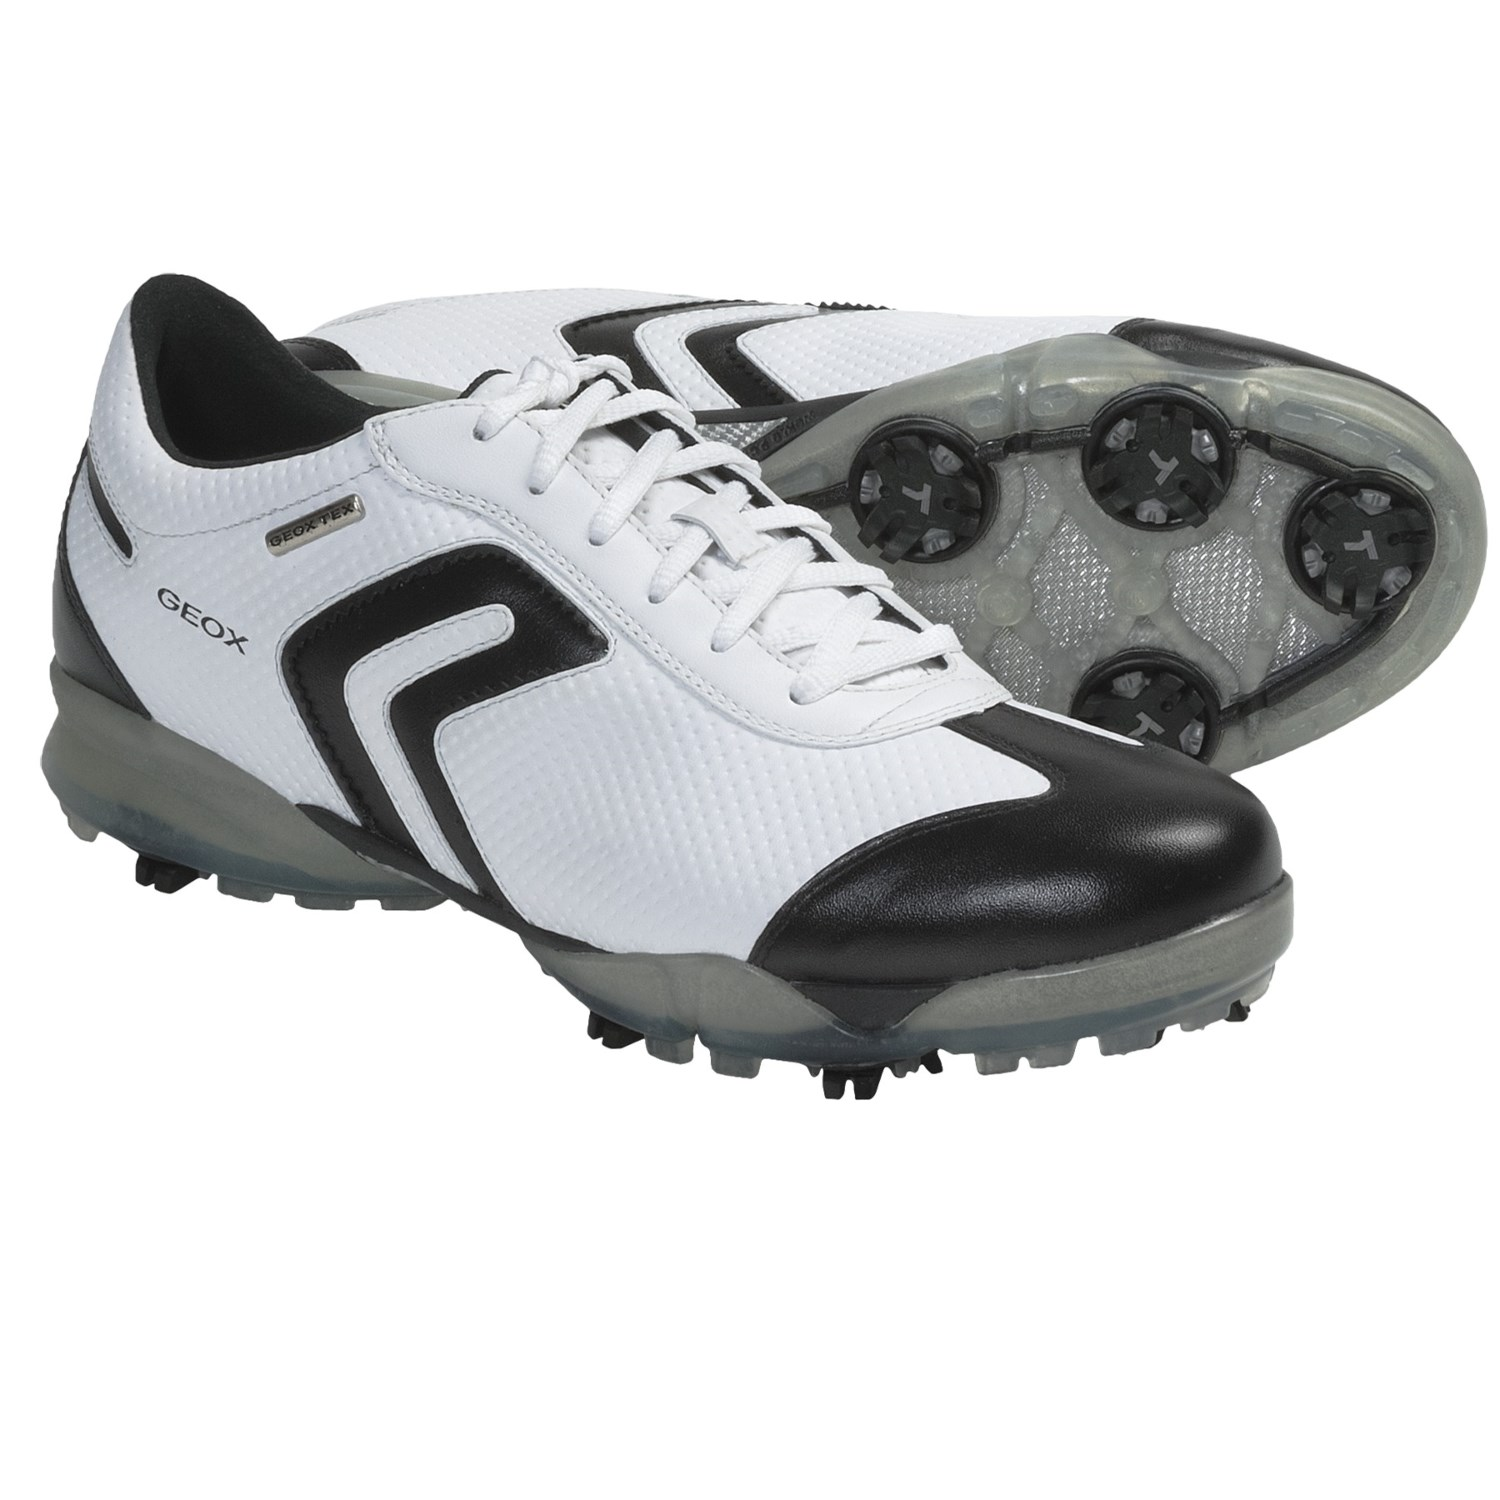 Callaway Solaire 2013 Women's Limited Edition Golf Shoe - 5 Medium Black/White